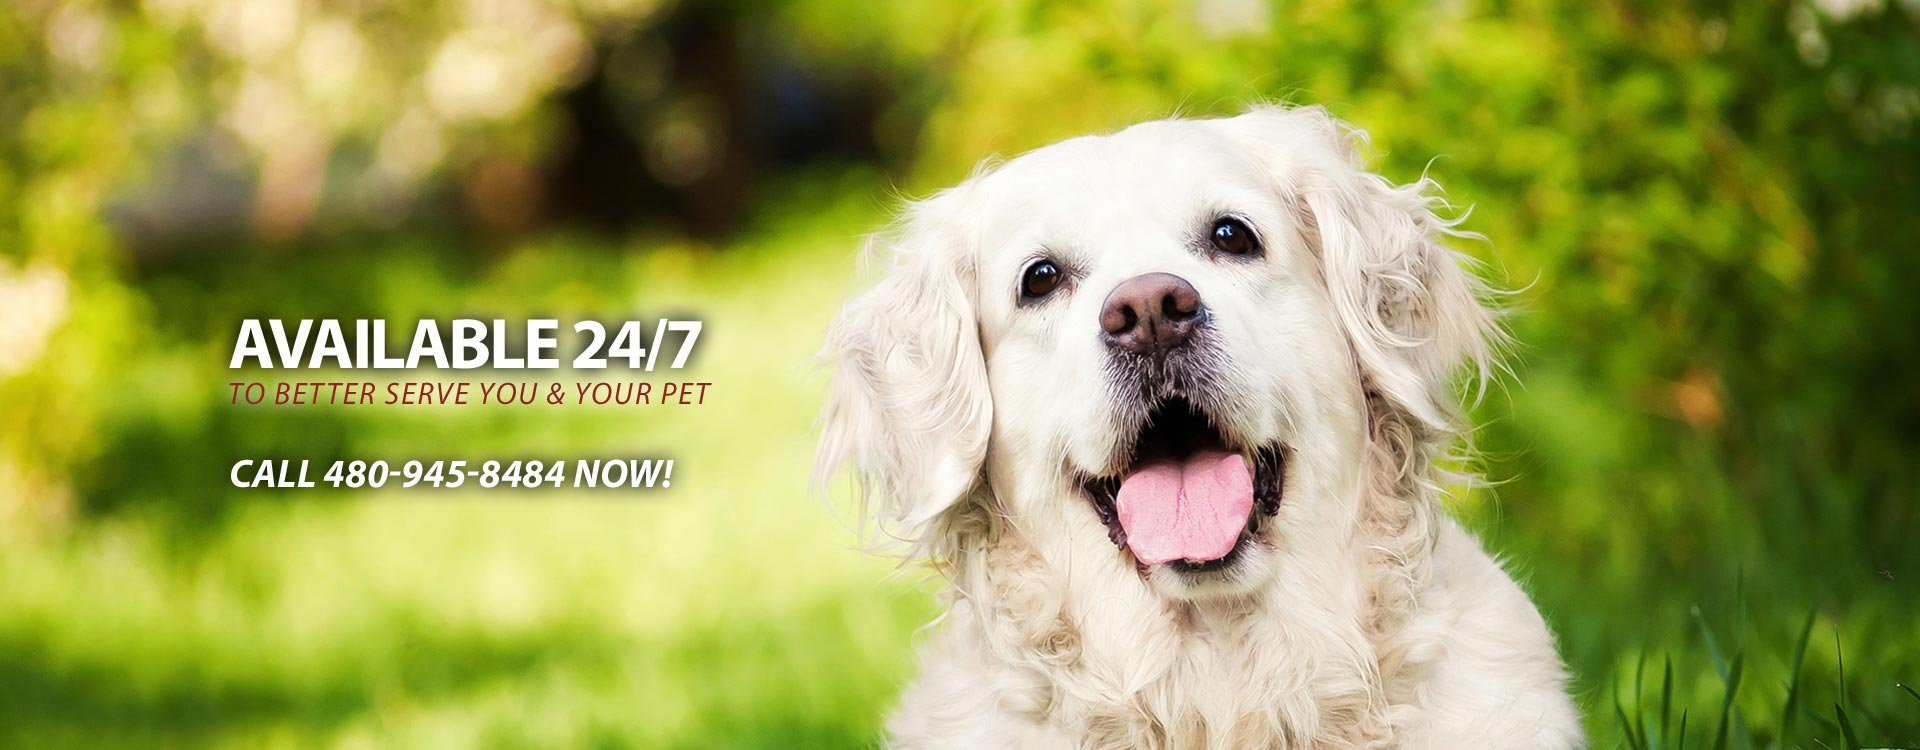 24 Hour Scottsdale Veterinary Service